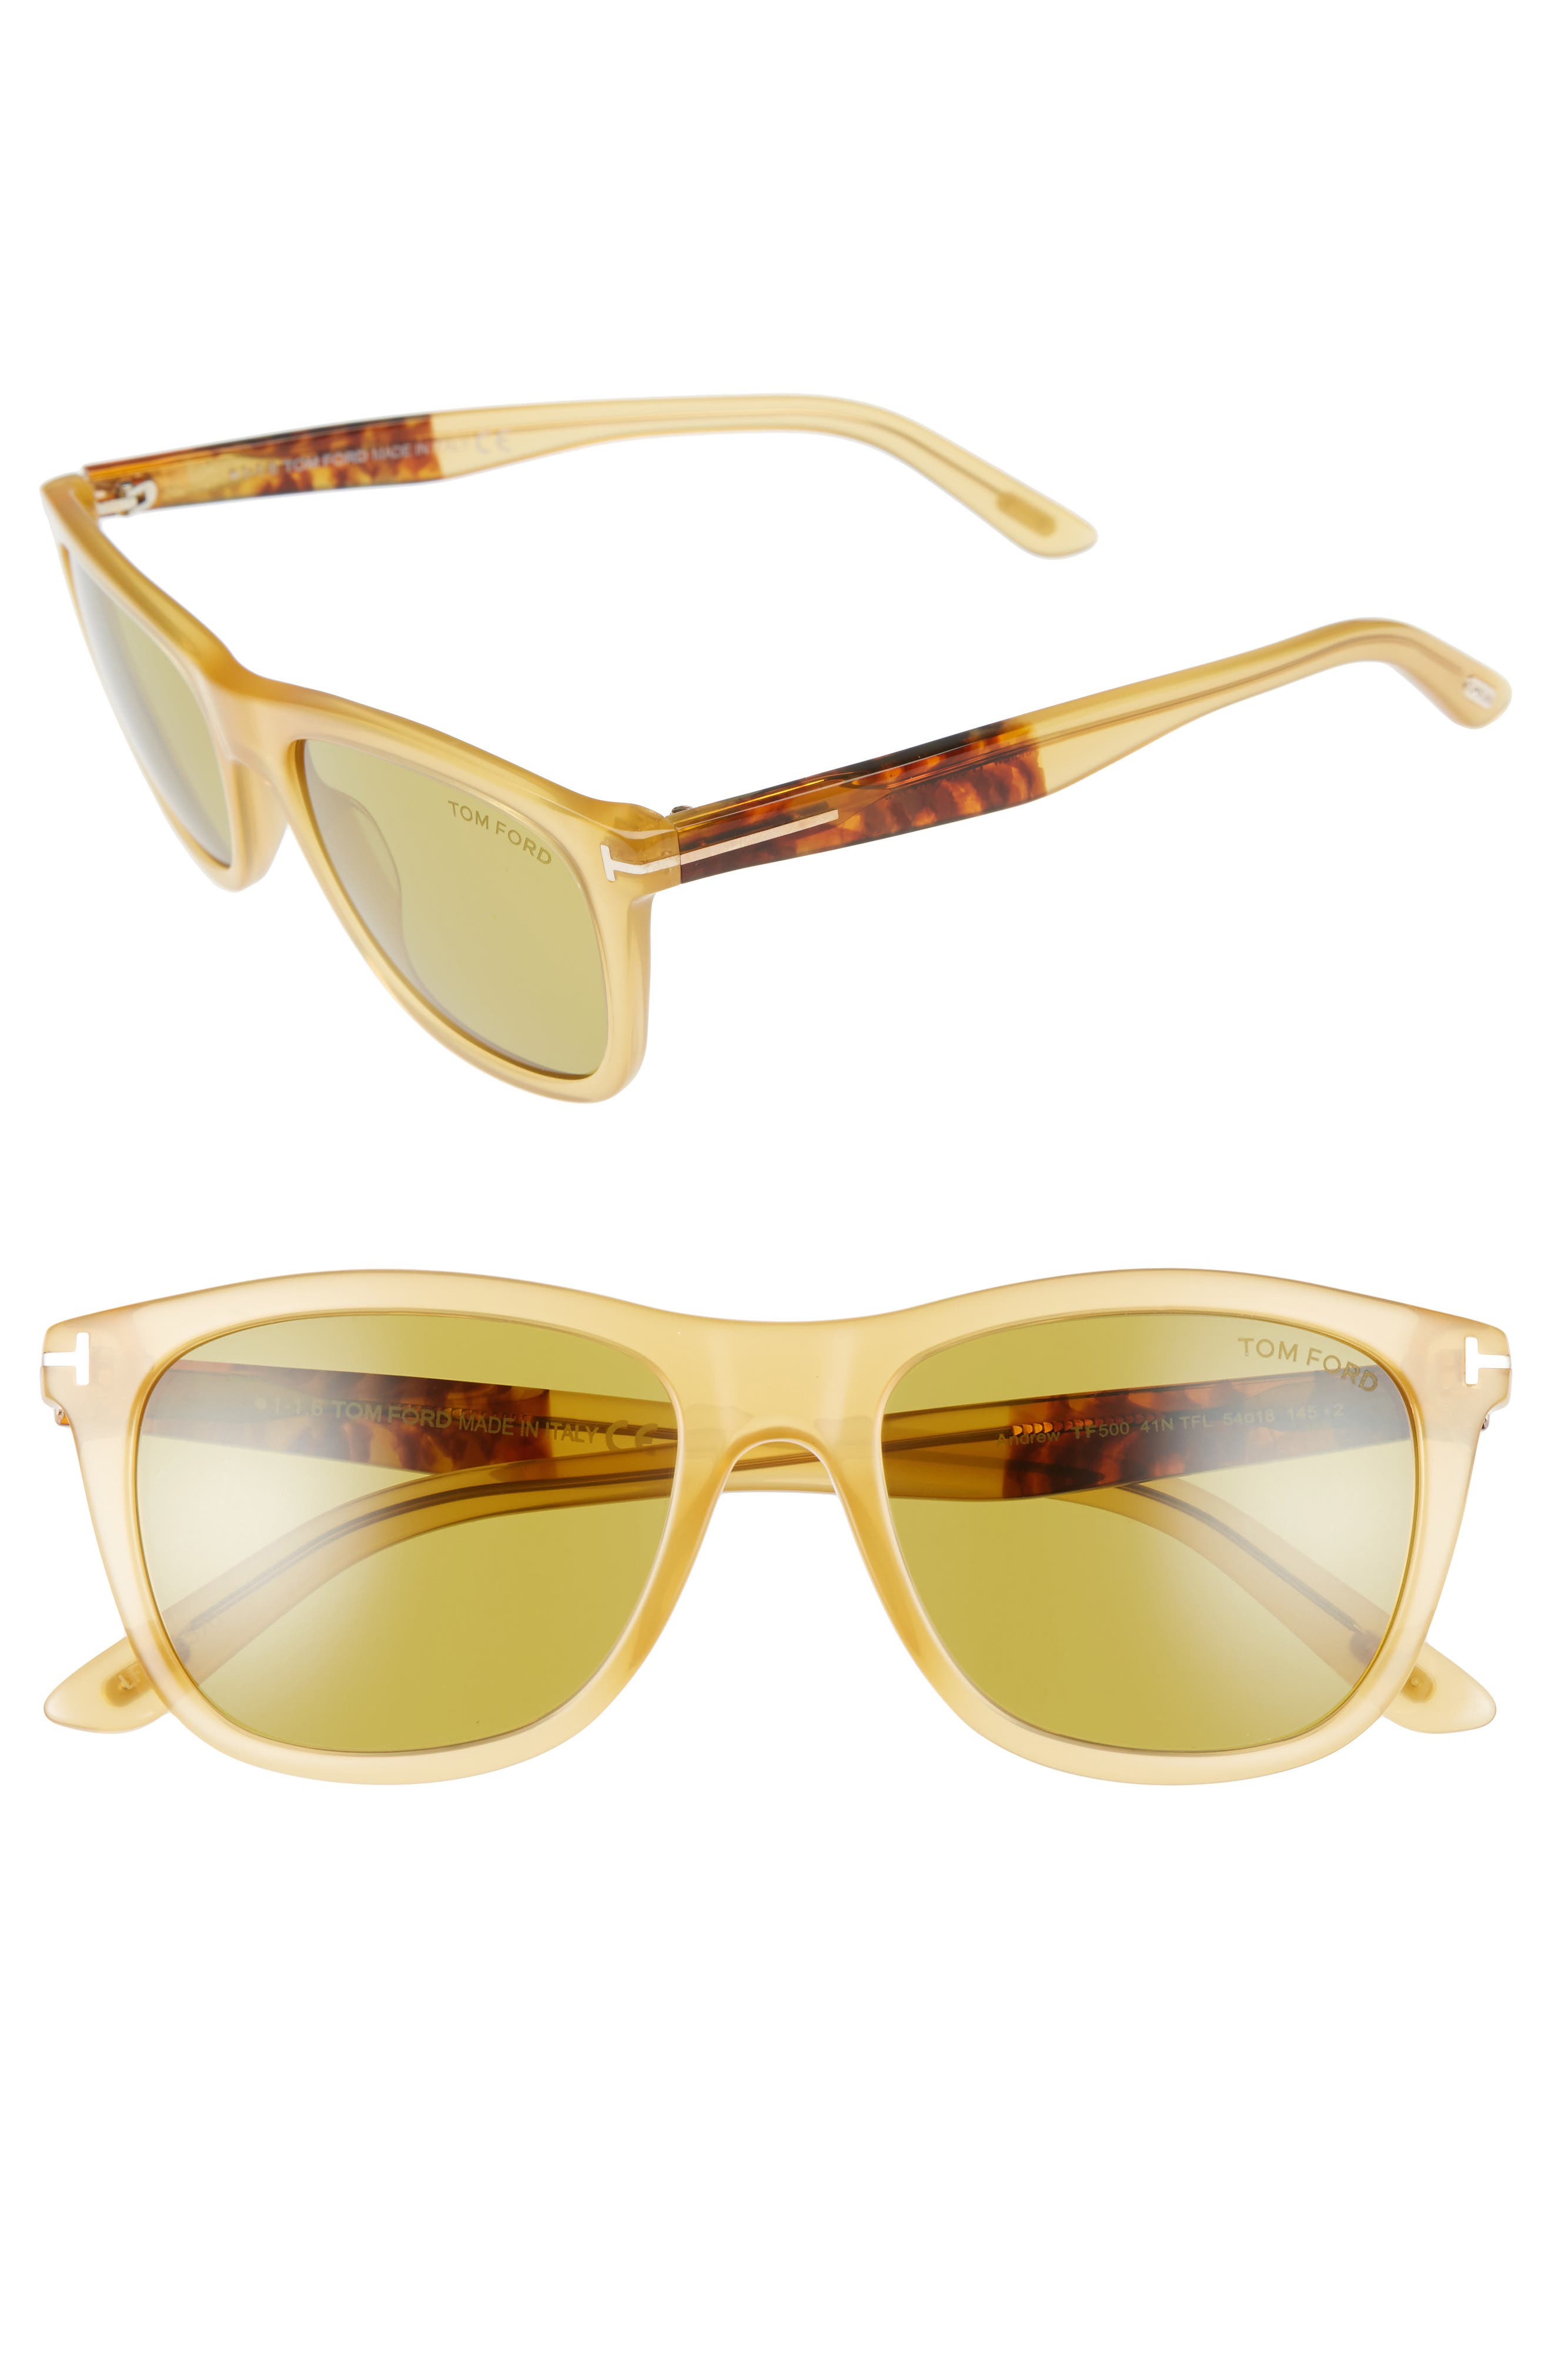 Andrew 54mm Sunglasses,                         Main,                         color, 250